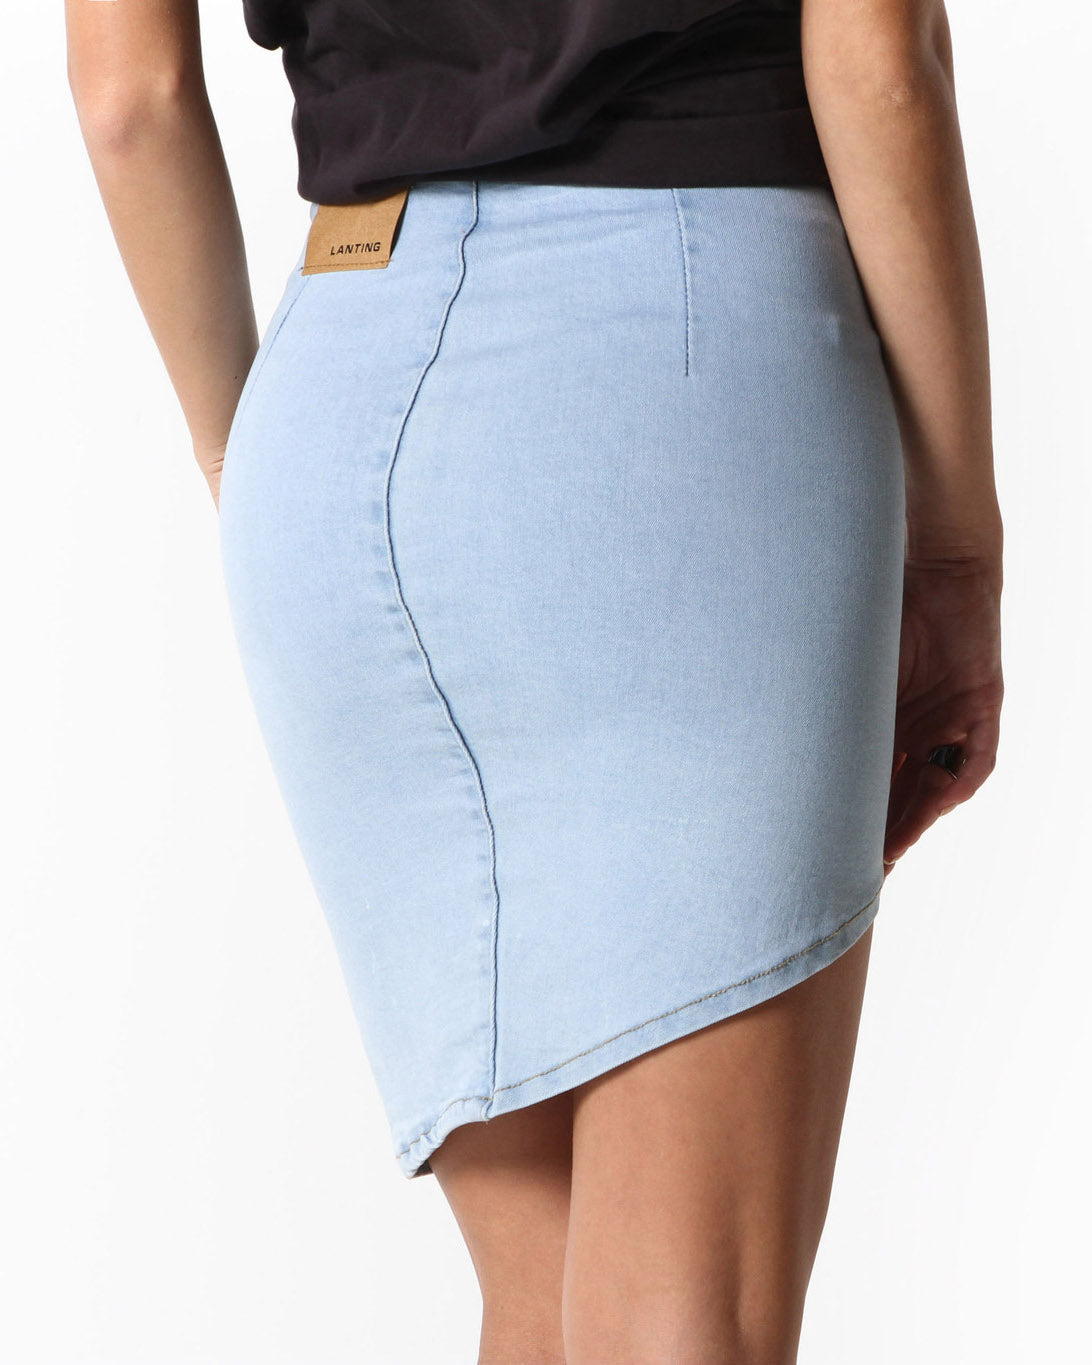 Enola Criss Cut Stretch Denim Skirt (Light Blue)